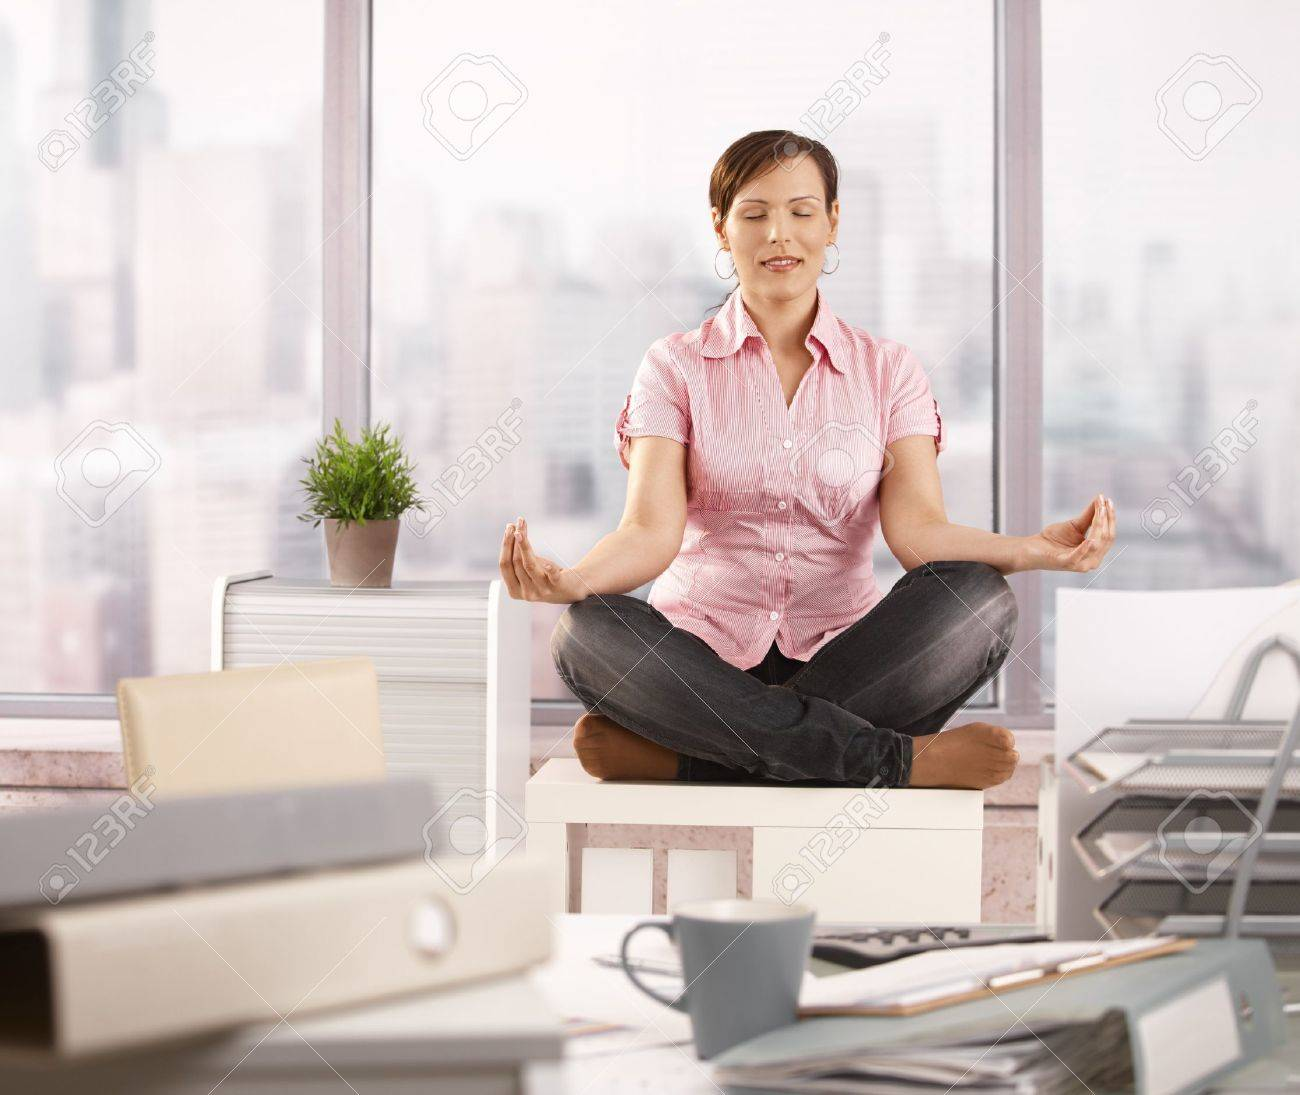 meditation office. Relaxed Office Worker Sitting On Cabinet, Doing Yoga Meditation With Closed Eyes, Smiling. N